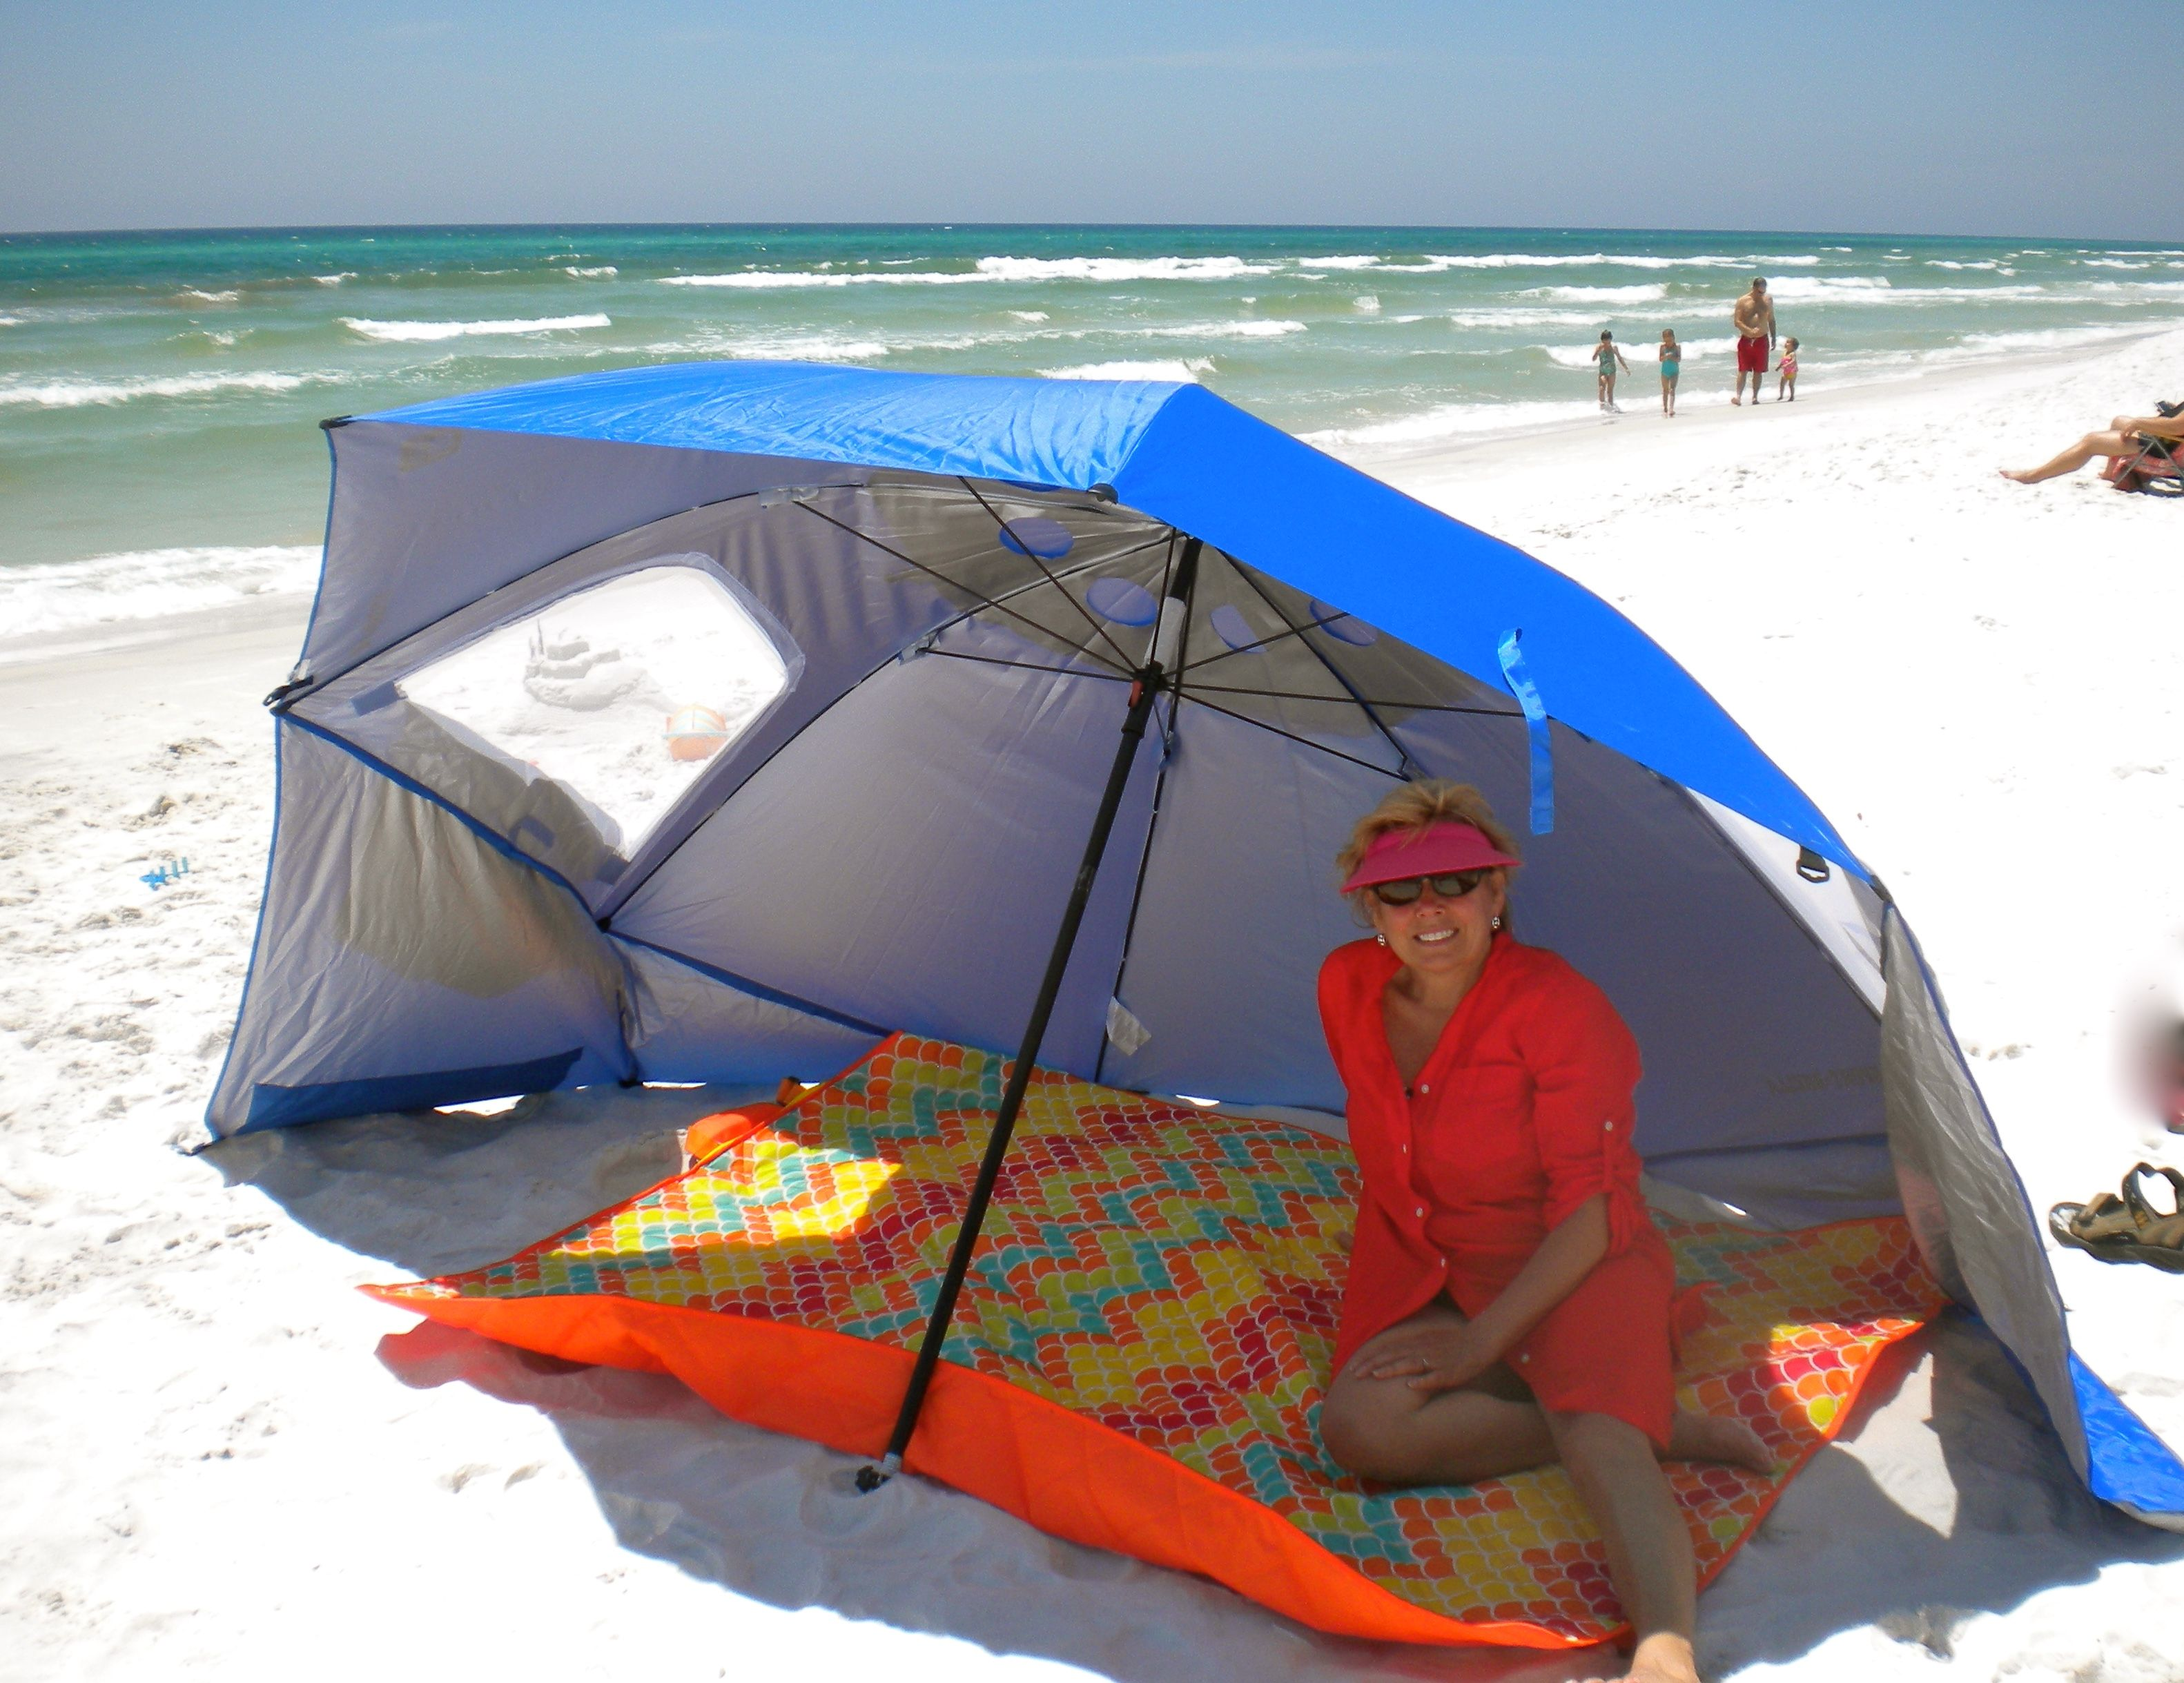 This Beach Umbrella Tent Can Be Used Upright Like An Or Tilted And Ancd In The Sand To Protect From Wind Sun